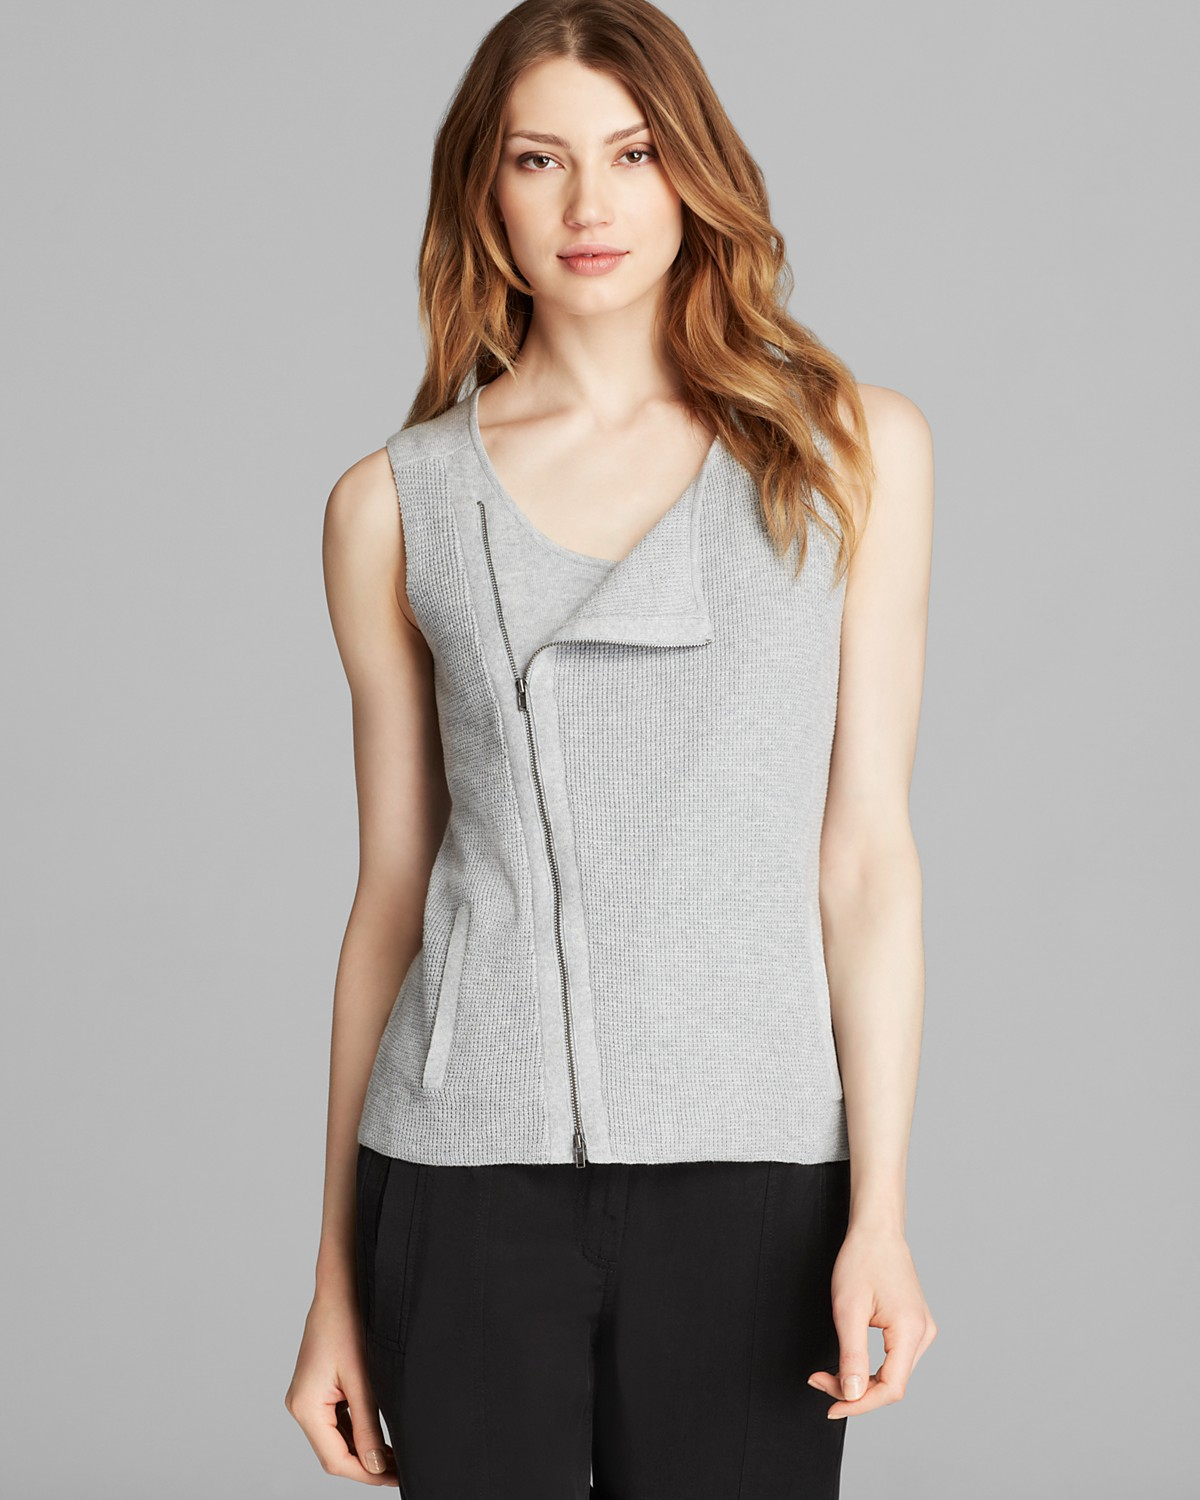 Eileen Fisher Zip Up Vest - Bloomingdale's Exclusive | Bloomingdale's